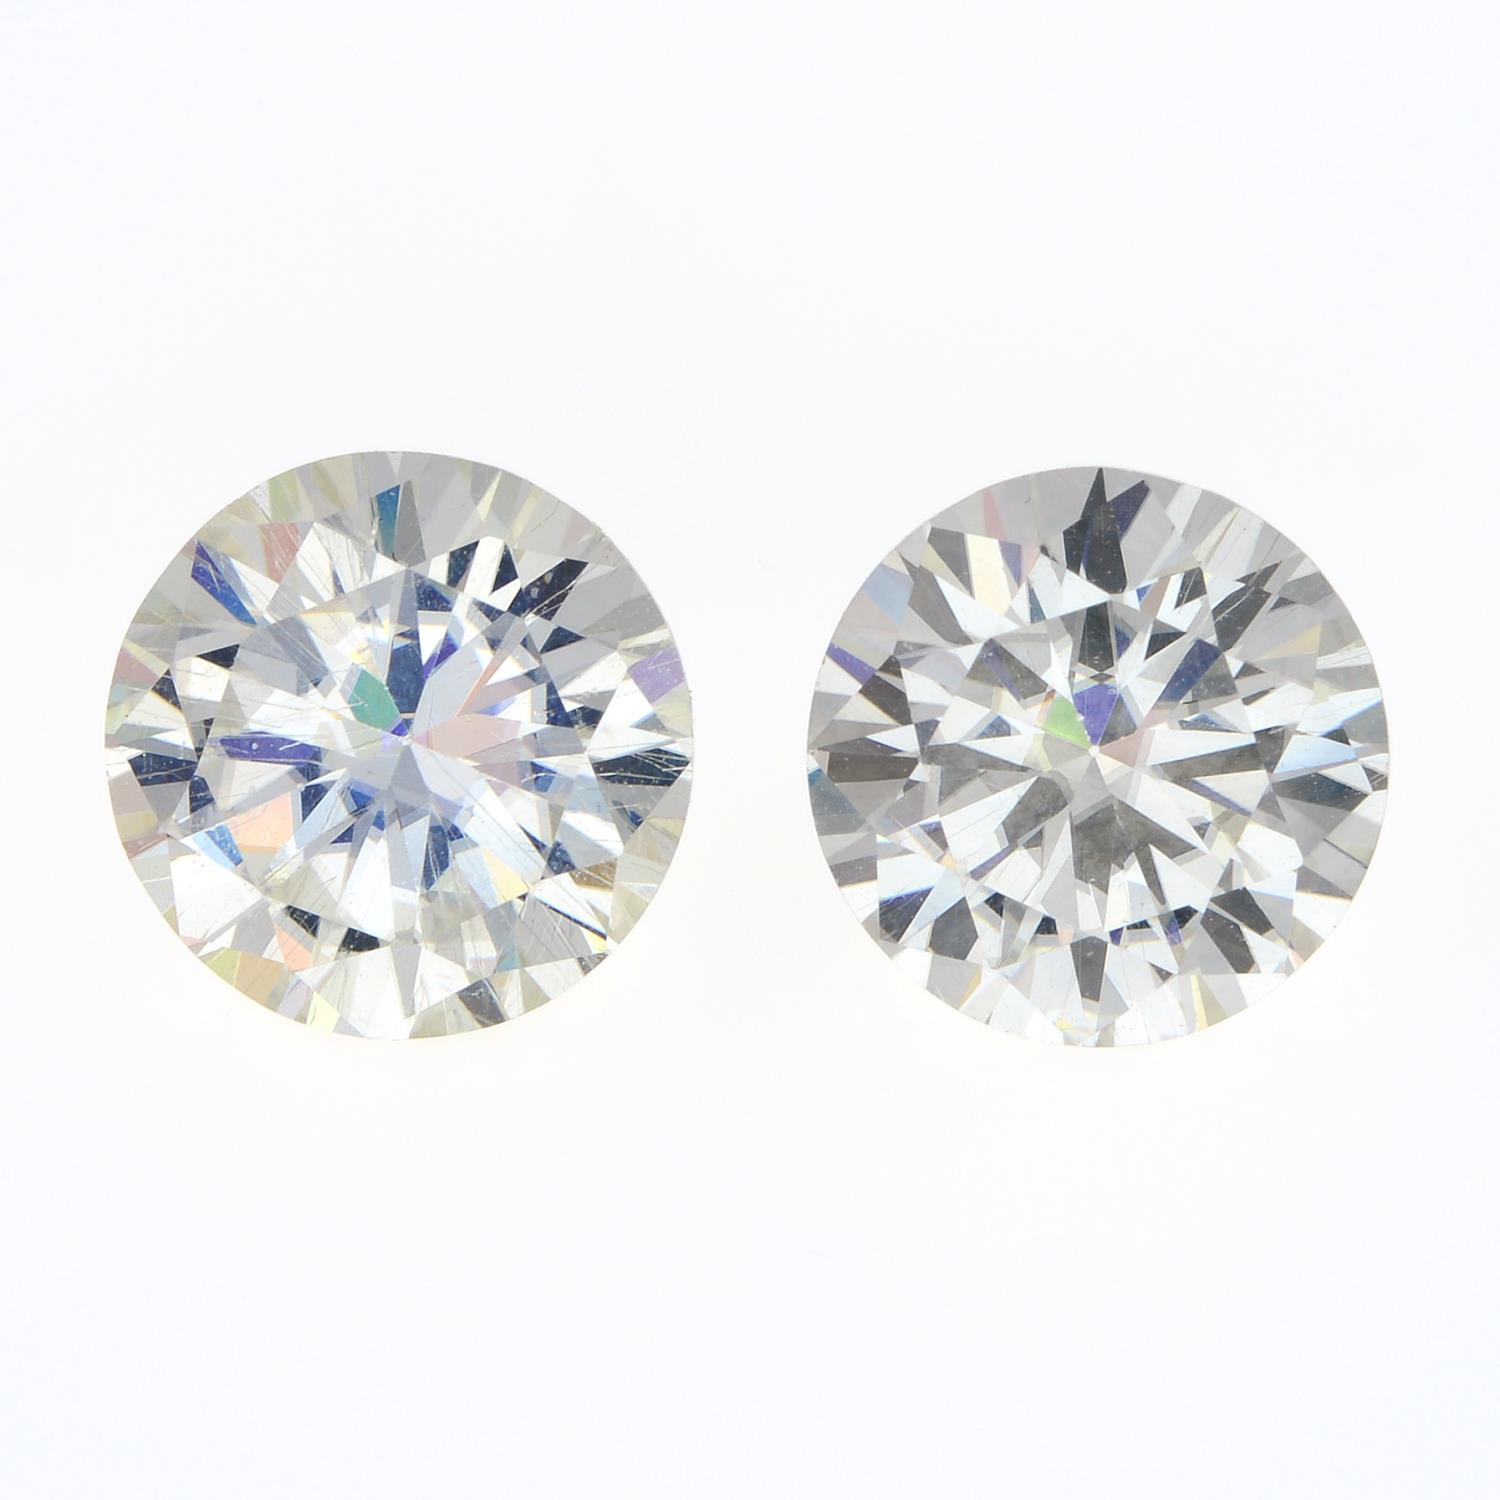 A pair of circular-shape synthetic moissanite, total weight 5.27cts.